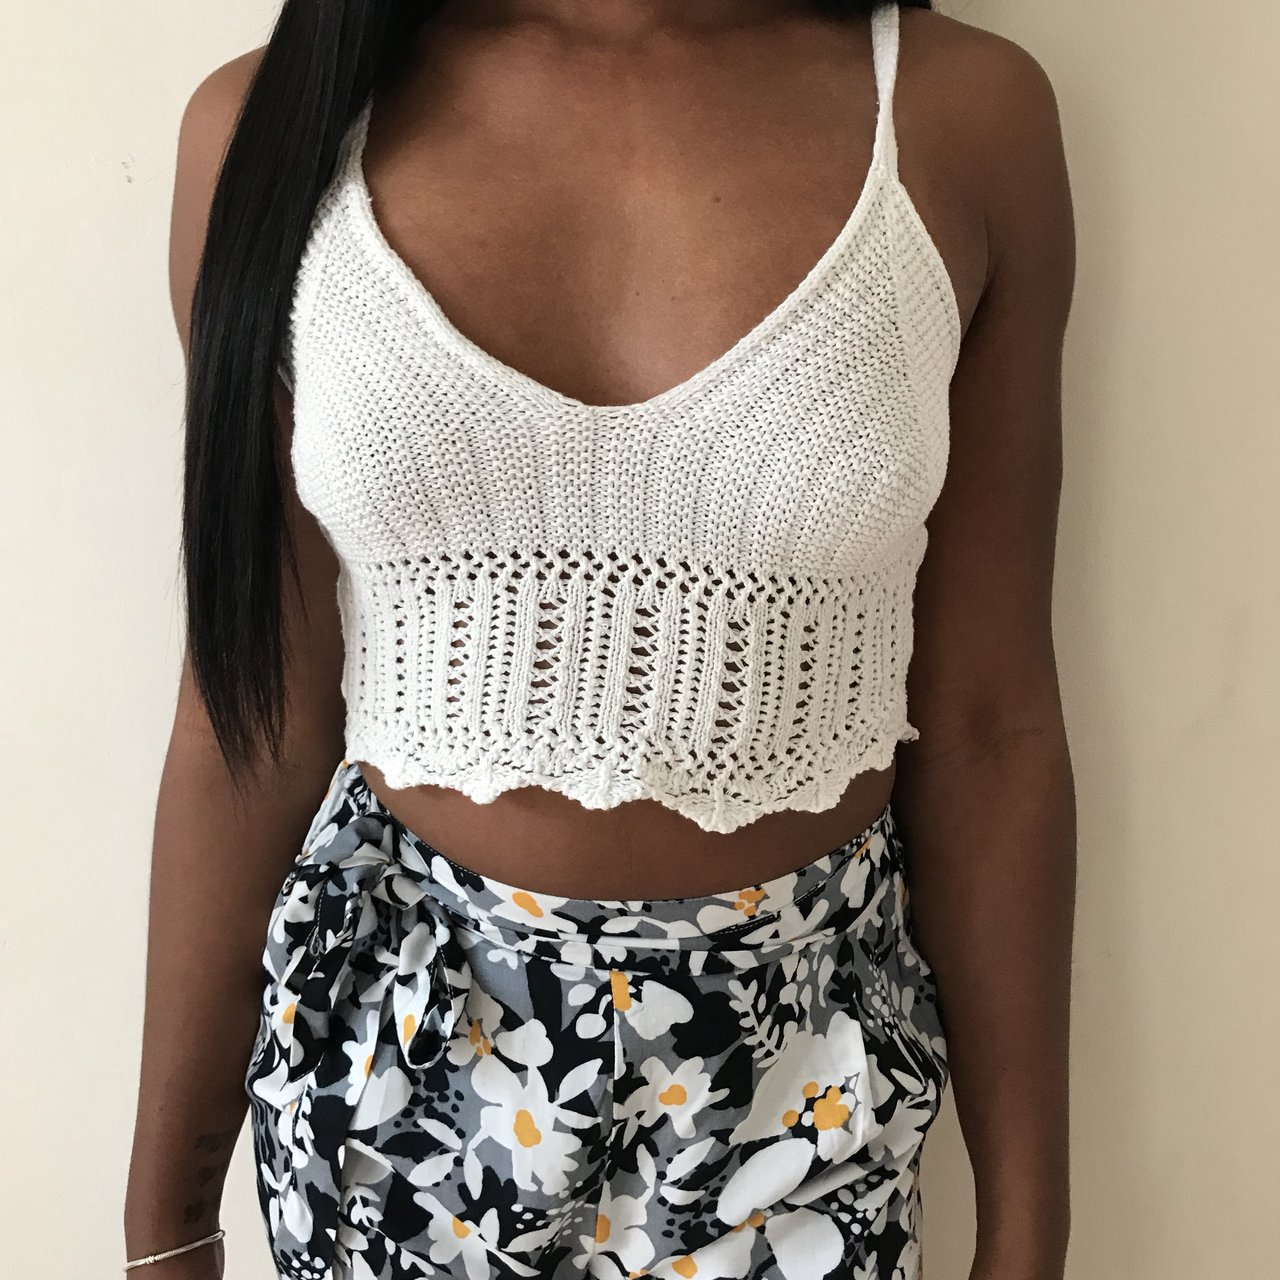 dcd89f429774e0 Missguided white crochet knitted bralet in Small which is a - Depop